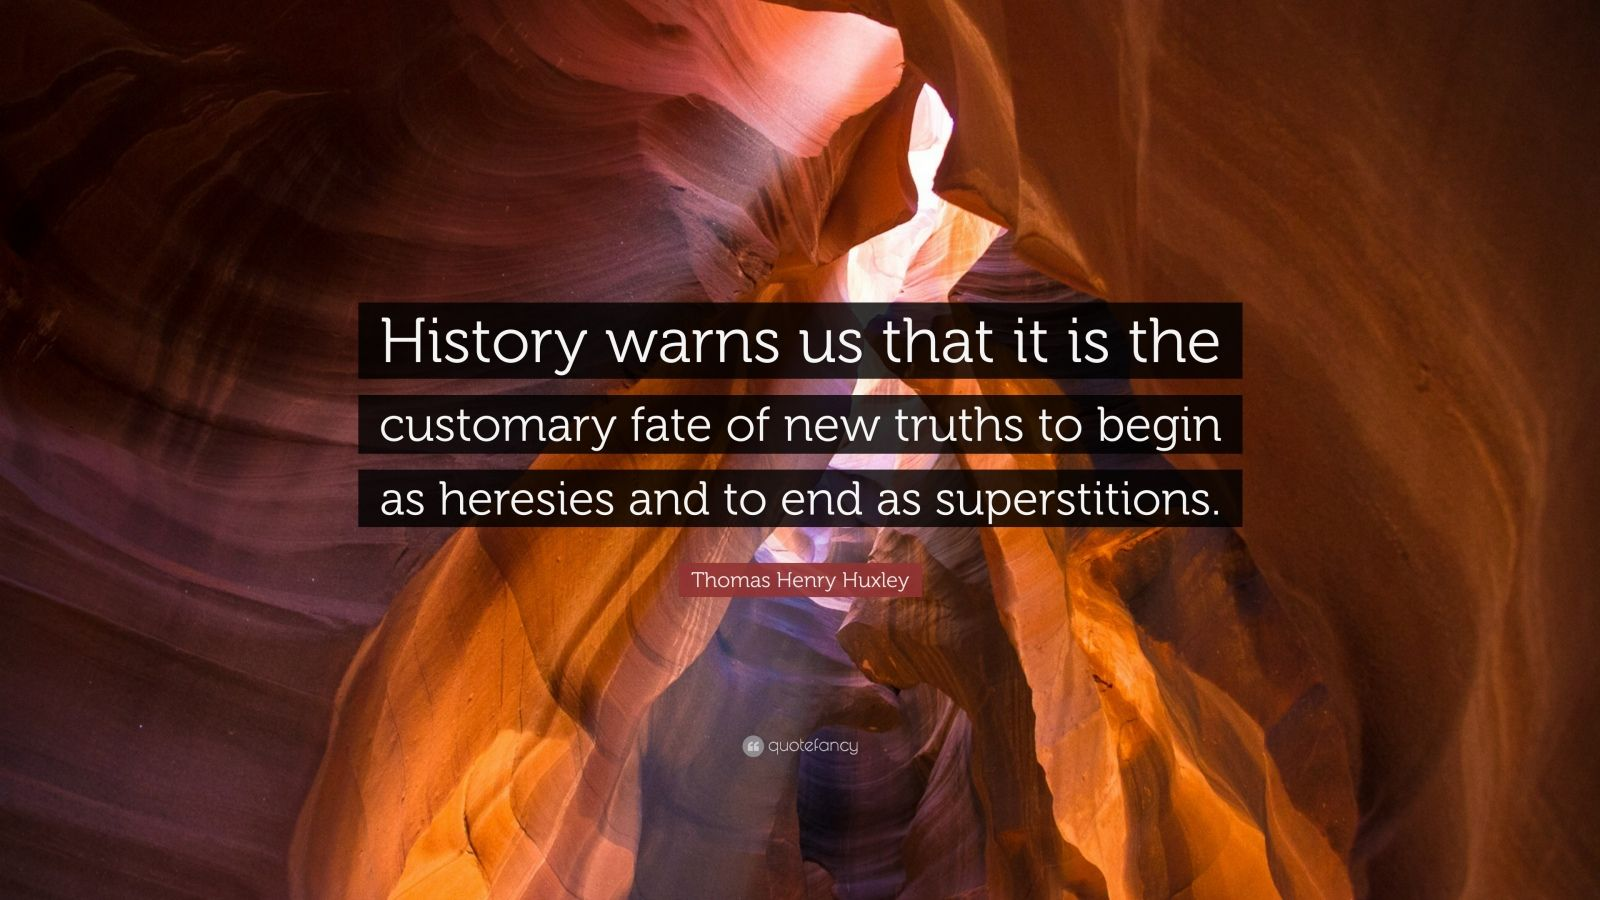 """Thomas Henry Huxley Quote: """"History warns us that it is the customary fate of new truths to begin as heresies and to end as superstitions."""""""